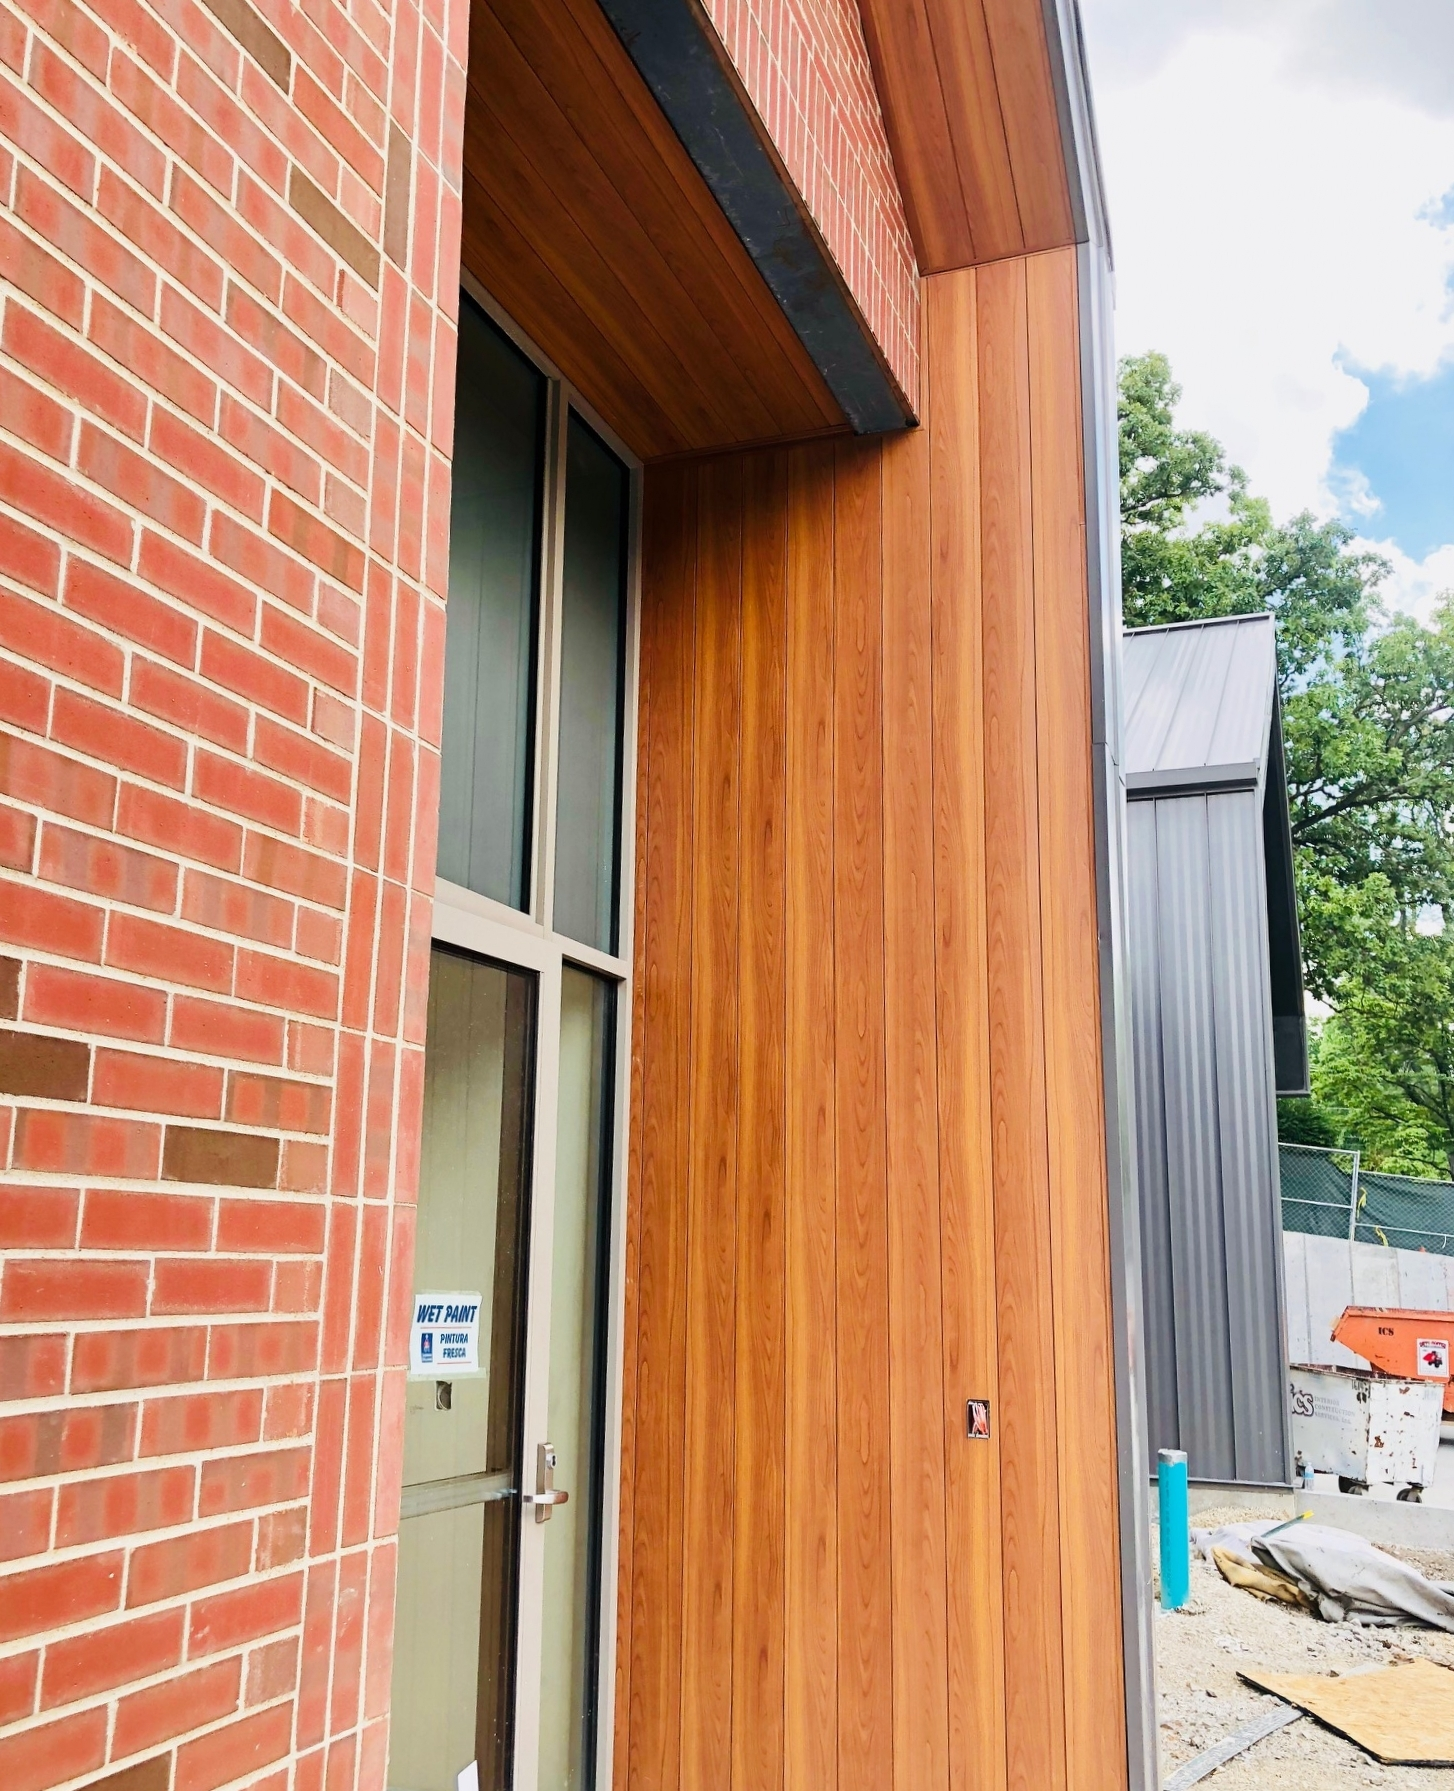 The Fire Station's entry area under construction -